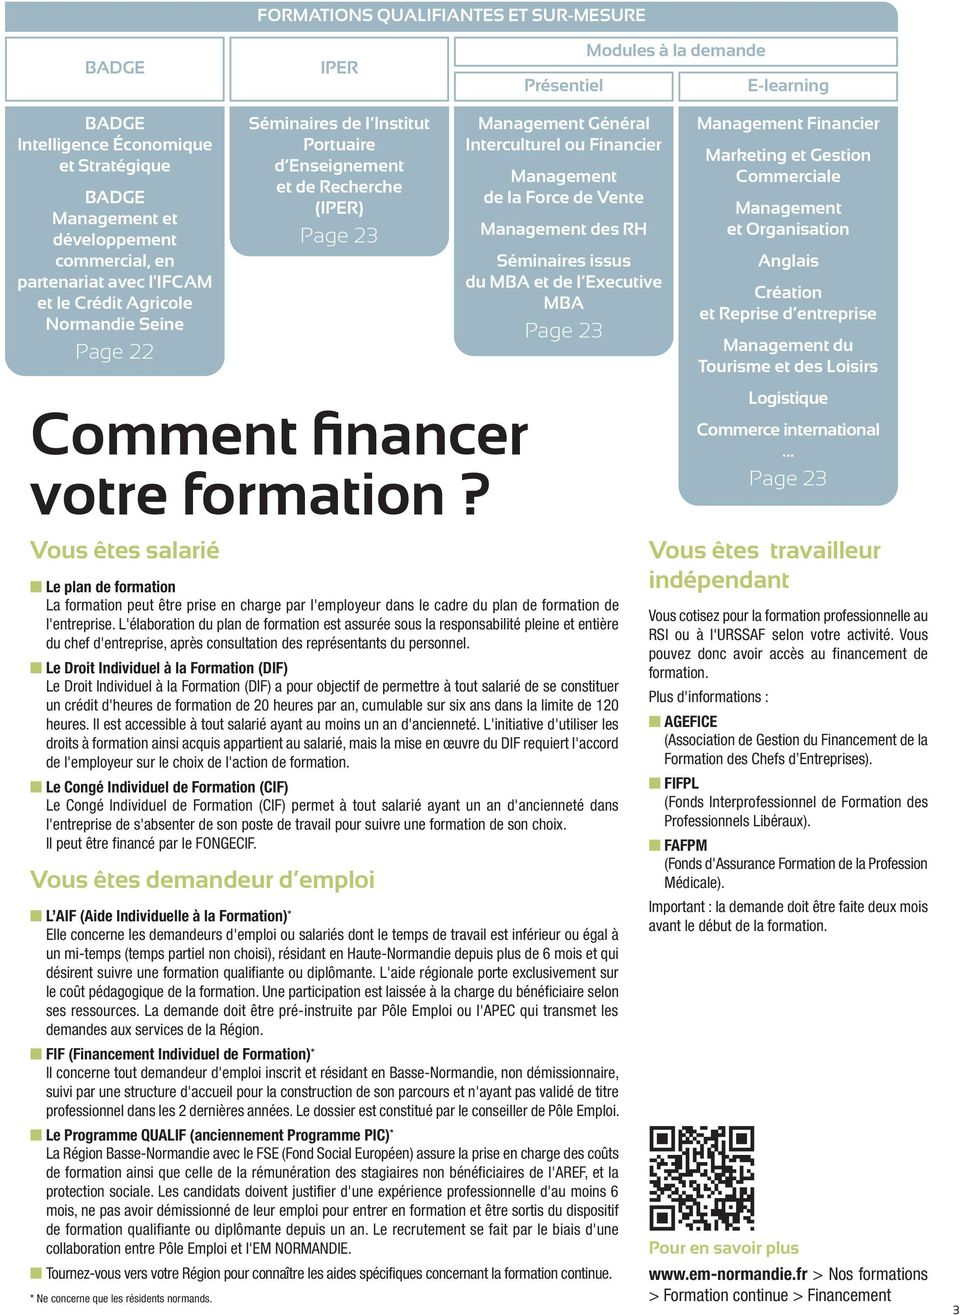 Interculturel ou Financier Management de la Force de Vente Management des RH Séminaires issus du MBA et de l Executive MBA Page 23 Management Financier Marketing et Gestion Commerciale Management et